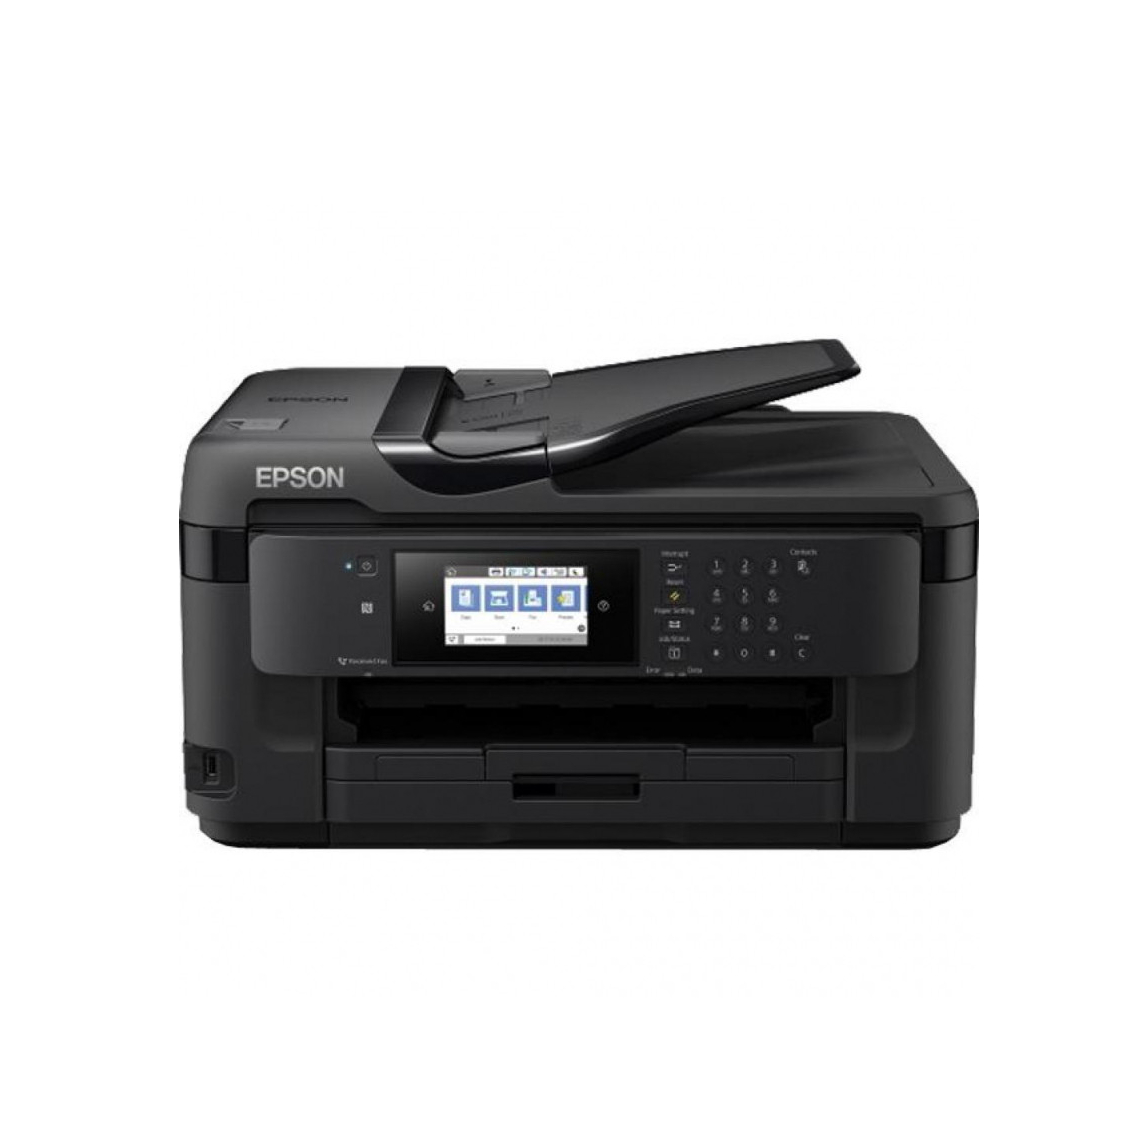 МФУ Epson WF-7710DWF Color C11CG36413